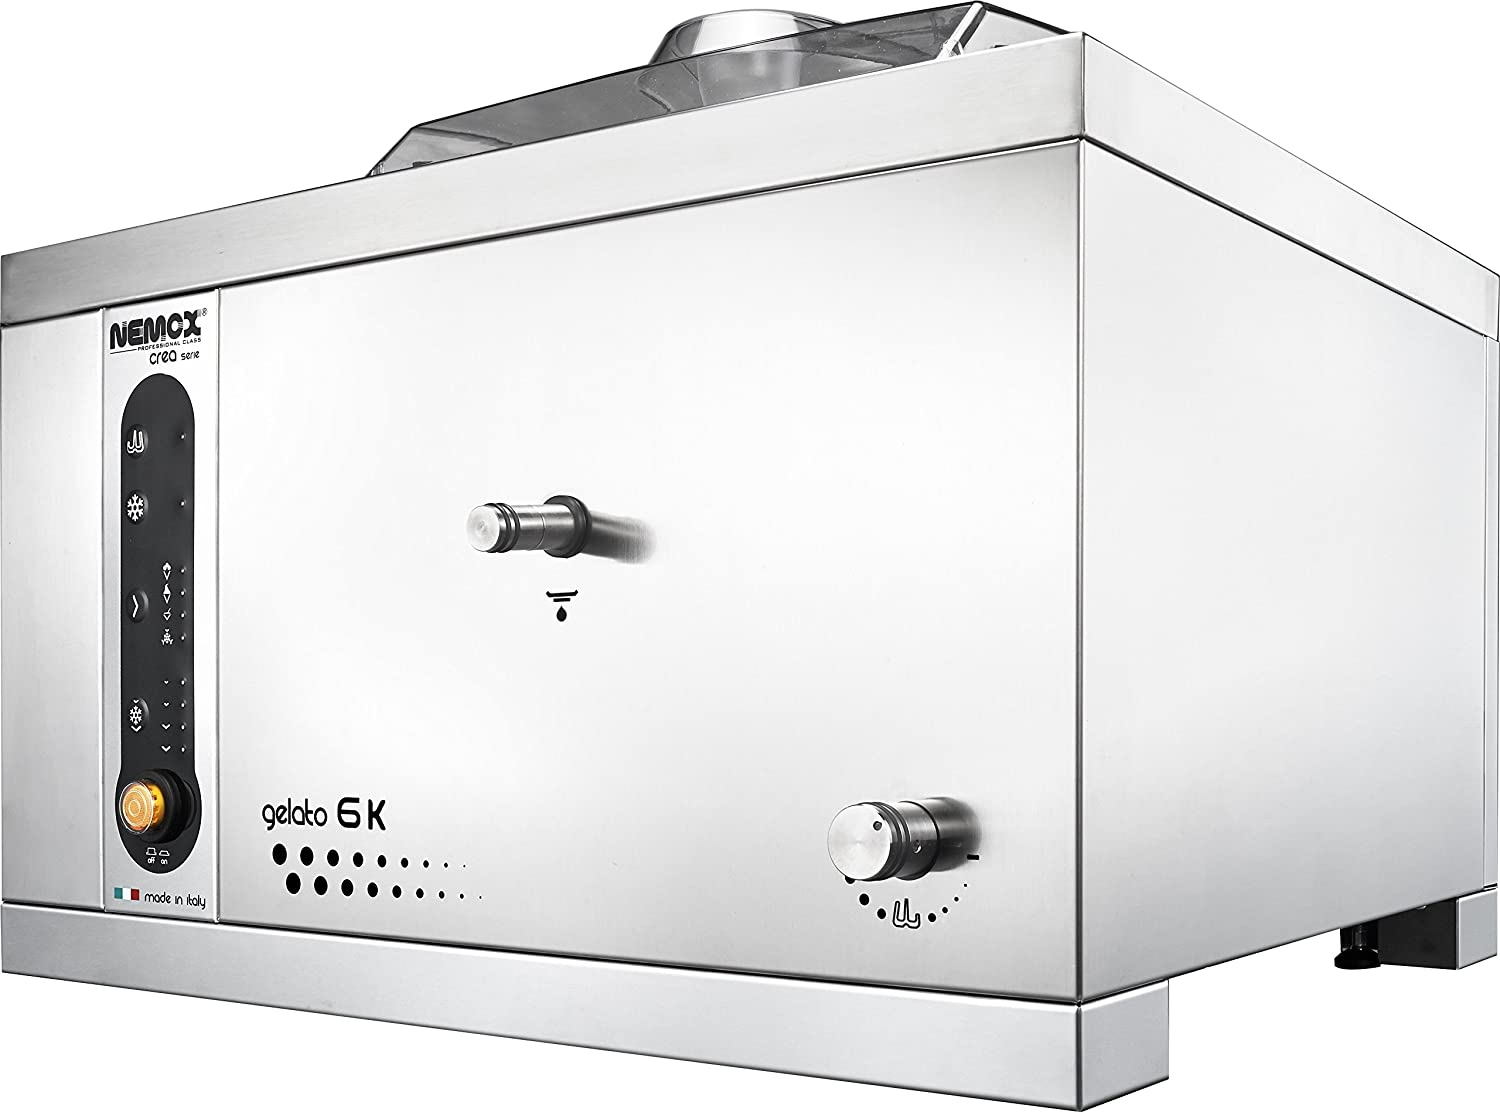 "Nemox Pro 6K Crea Fully Automatic Commercial Tabletop Gelato/Ice Cream Maker with Conservation, 20.9"" Length"